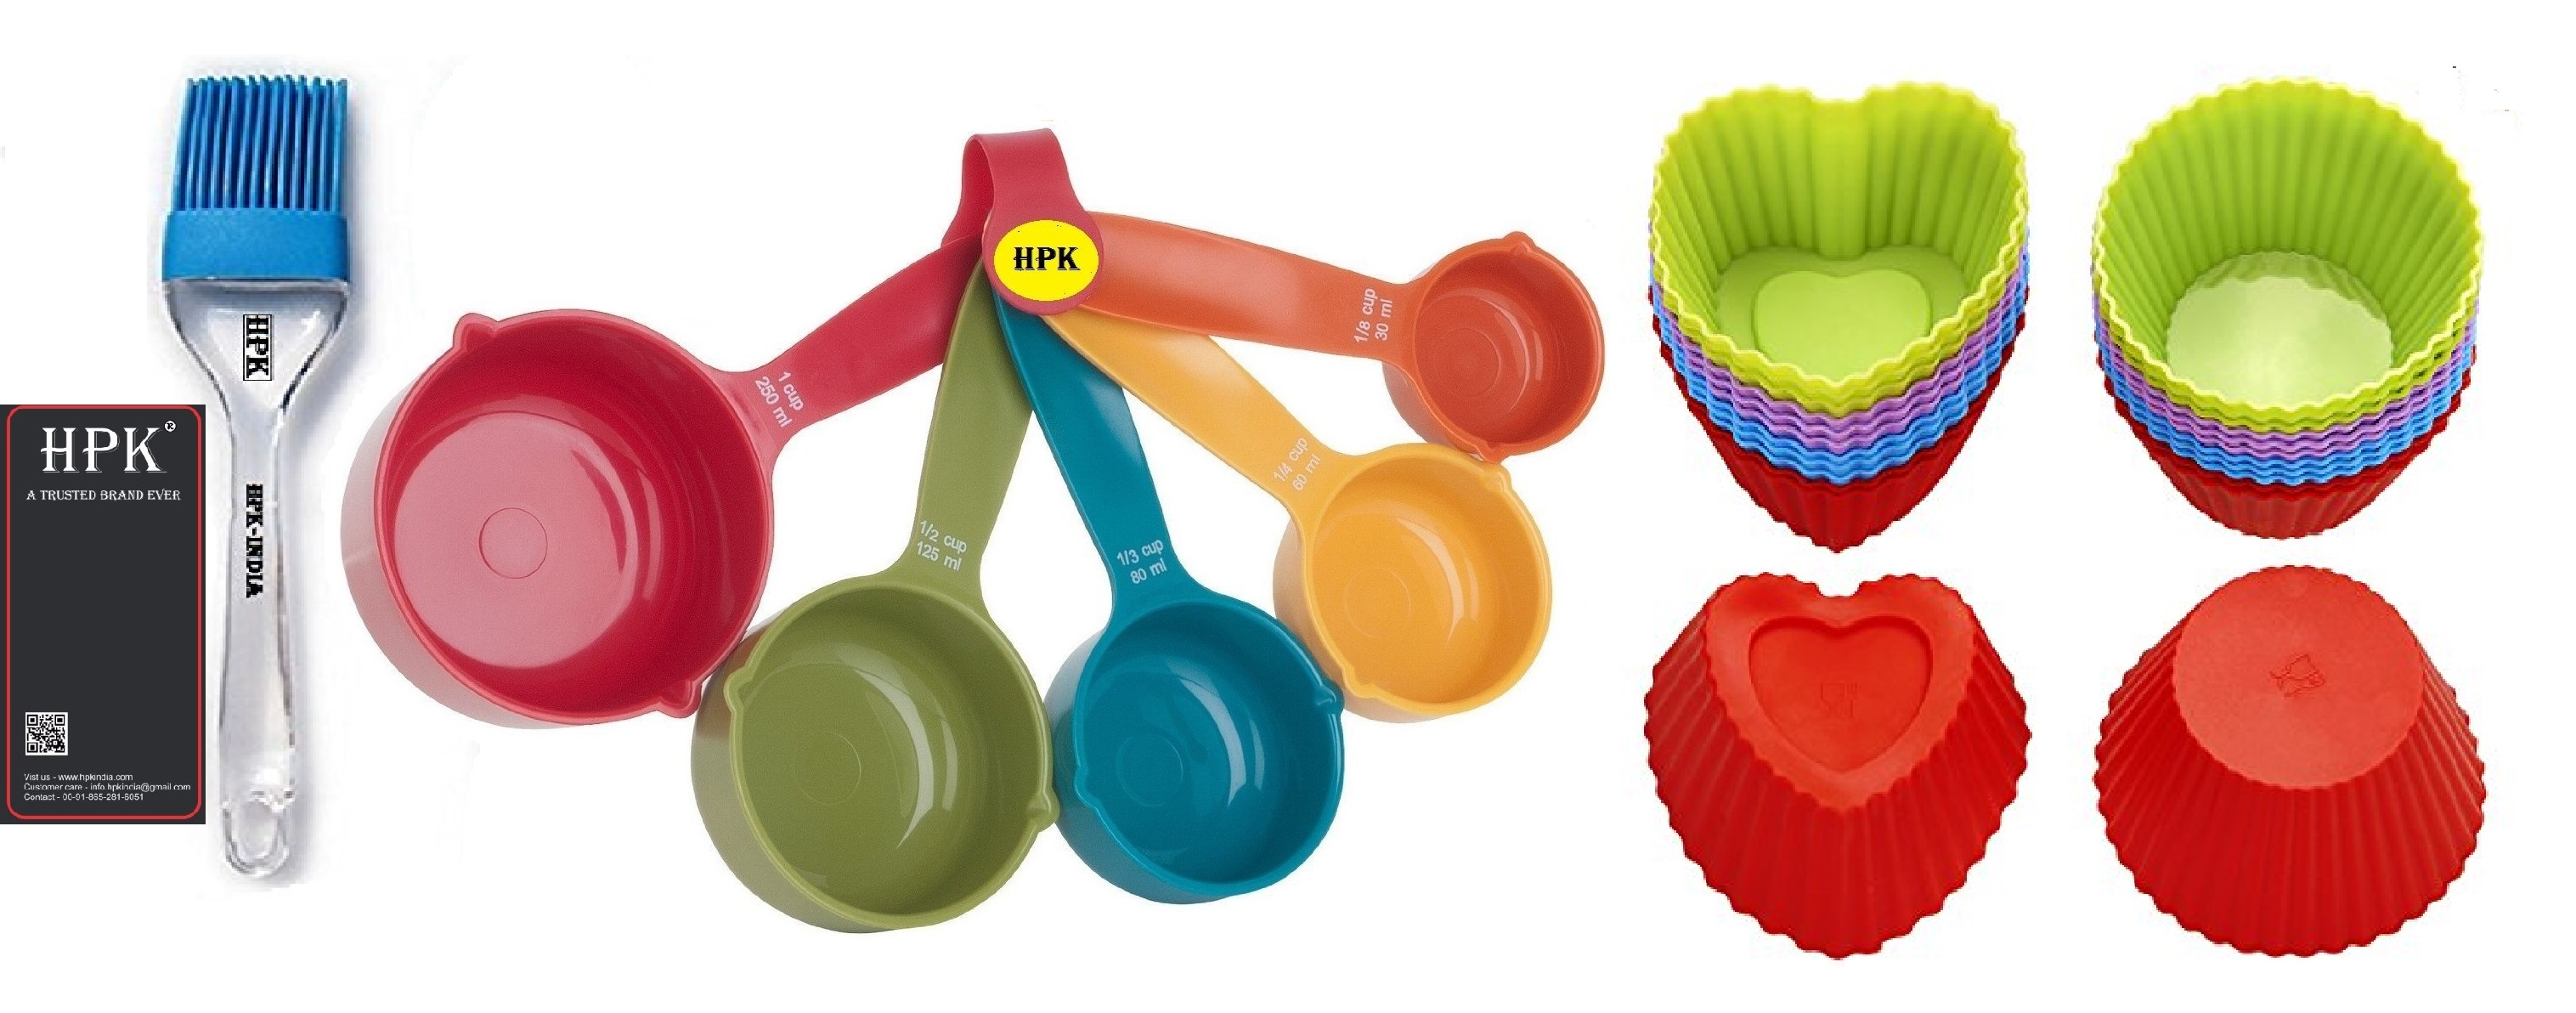 hpk-Measurement-Measuring-Cups-And-Spoons-with-pastry brush heart and round mold